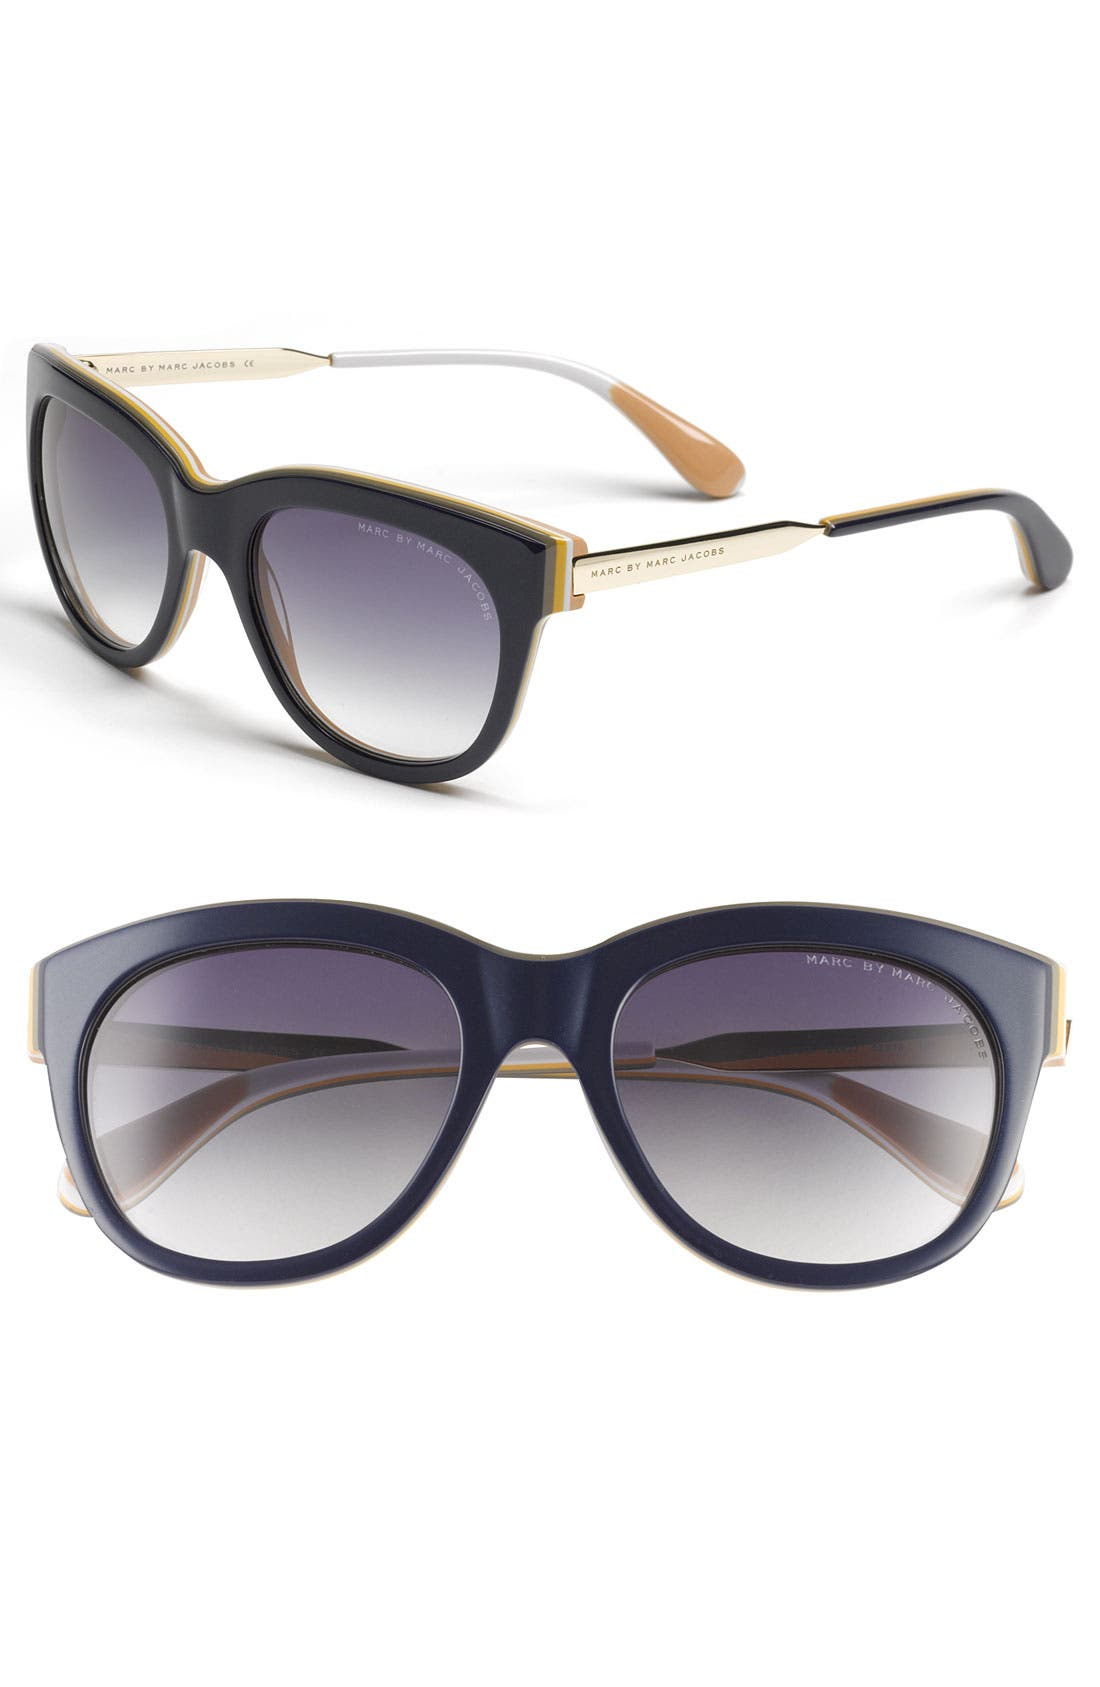 Alternate Image 1 Selected - MARC BY MARC JACOBS 52mm Retro Sunglasses